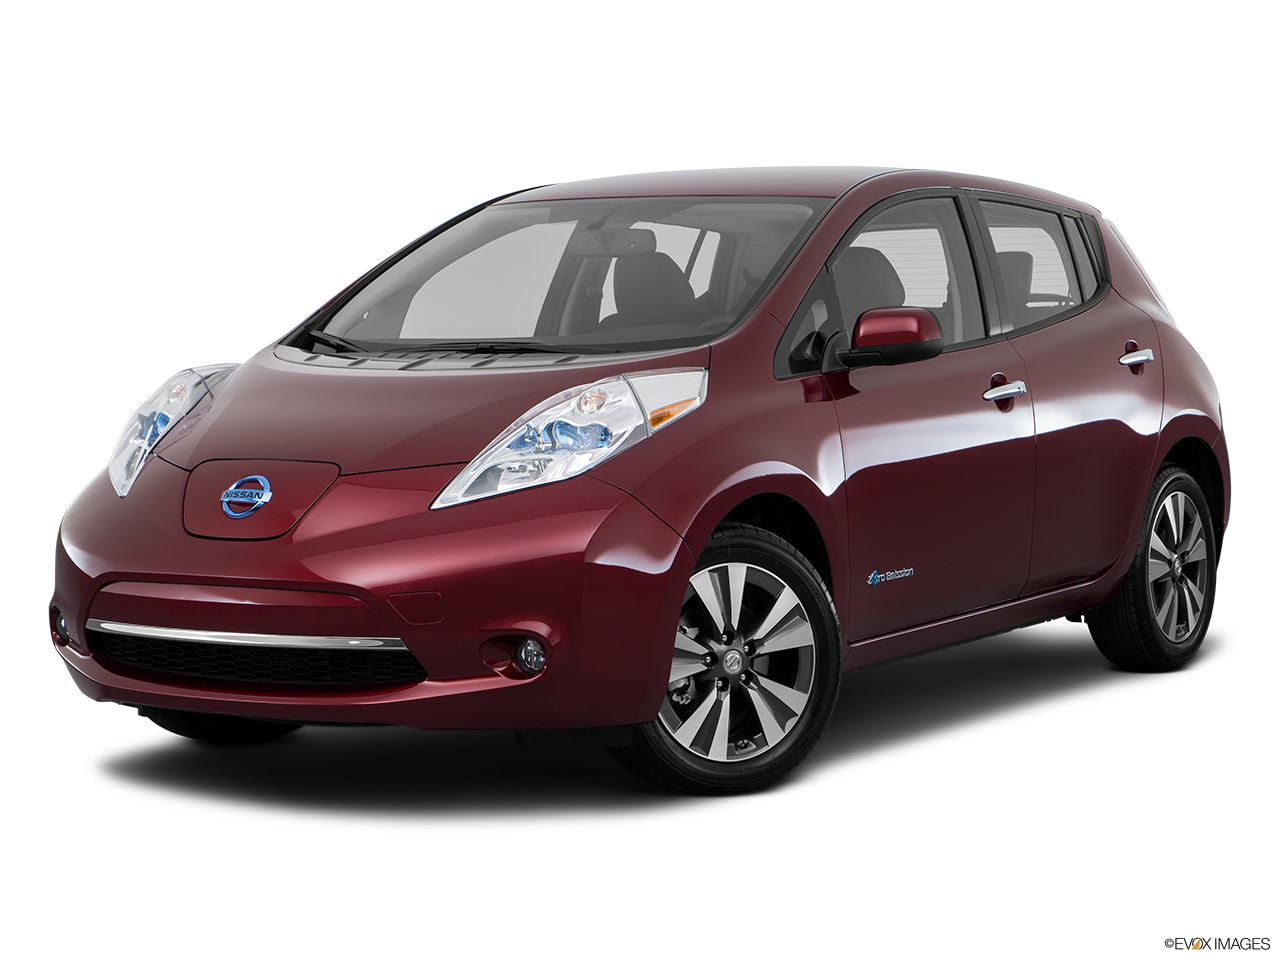 Test Drive A 2016 Nissan LEAF at Empire Nissan in Ontario